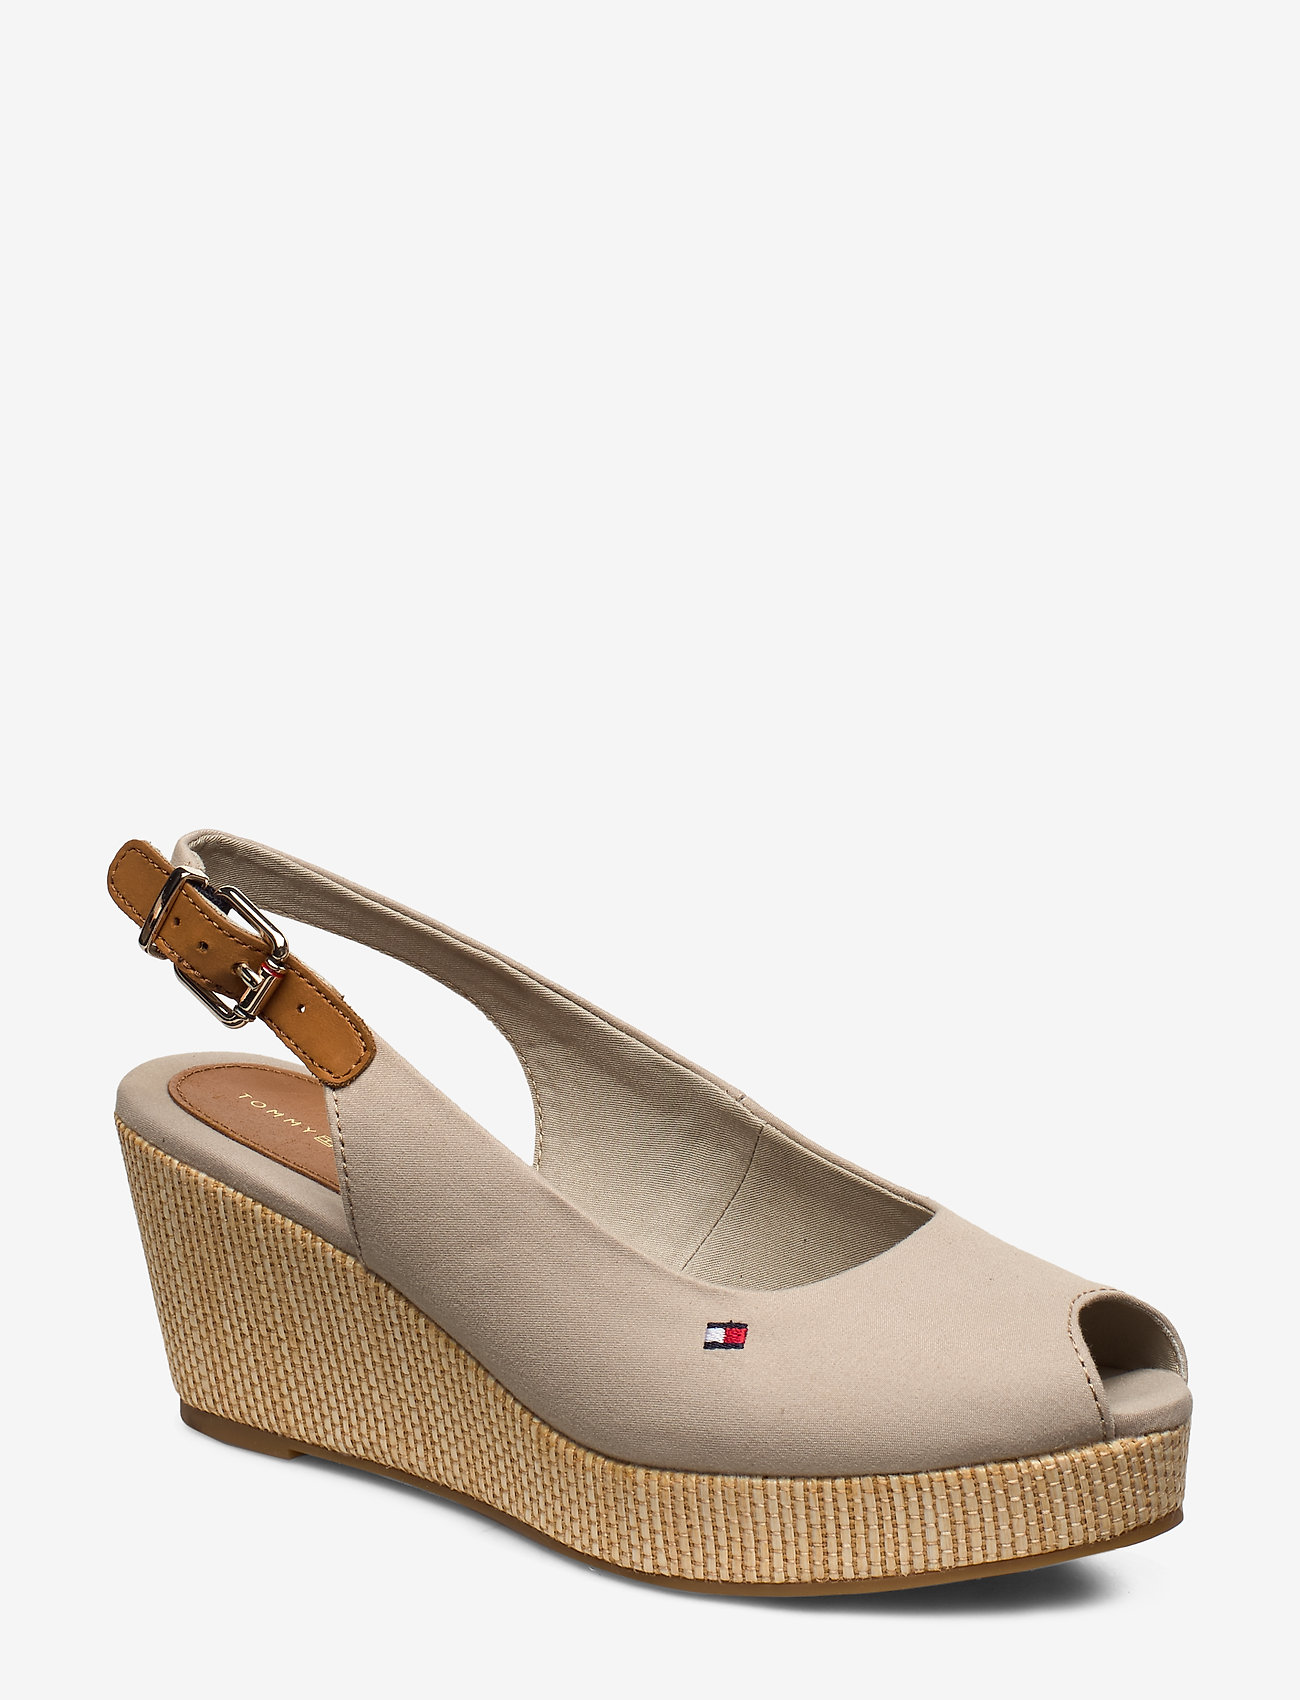 Tommy Hilfiger - ICONIC ELBA SLING BACK WEDGE - wedges - stone - 0